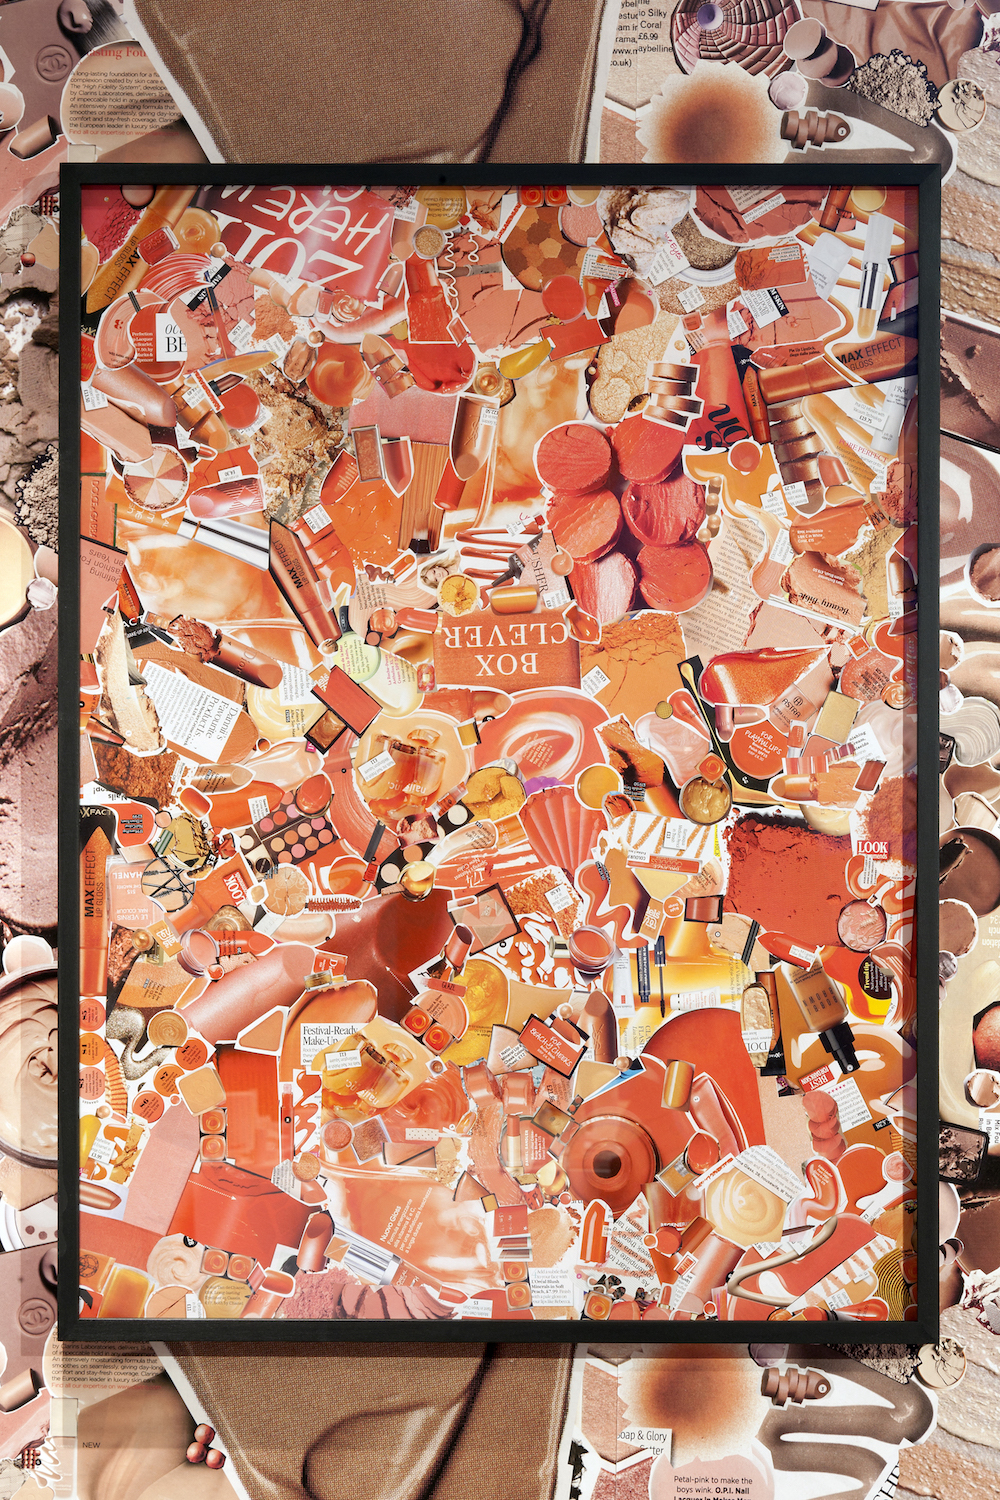 Ludovica Gioscia, Orange, 2011. Make-up ads on museum board, paper, starch paste. Framed. 84 x 63 cm.